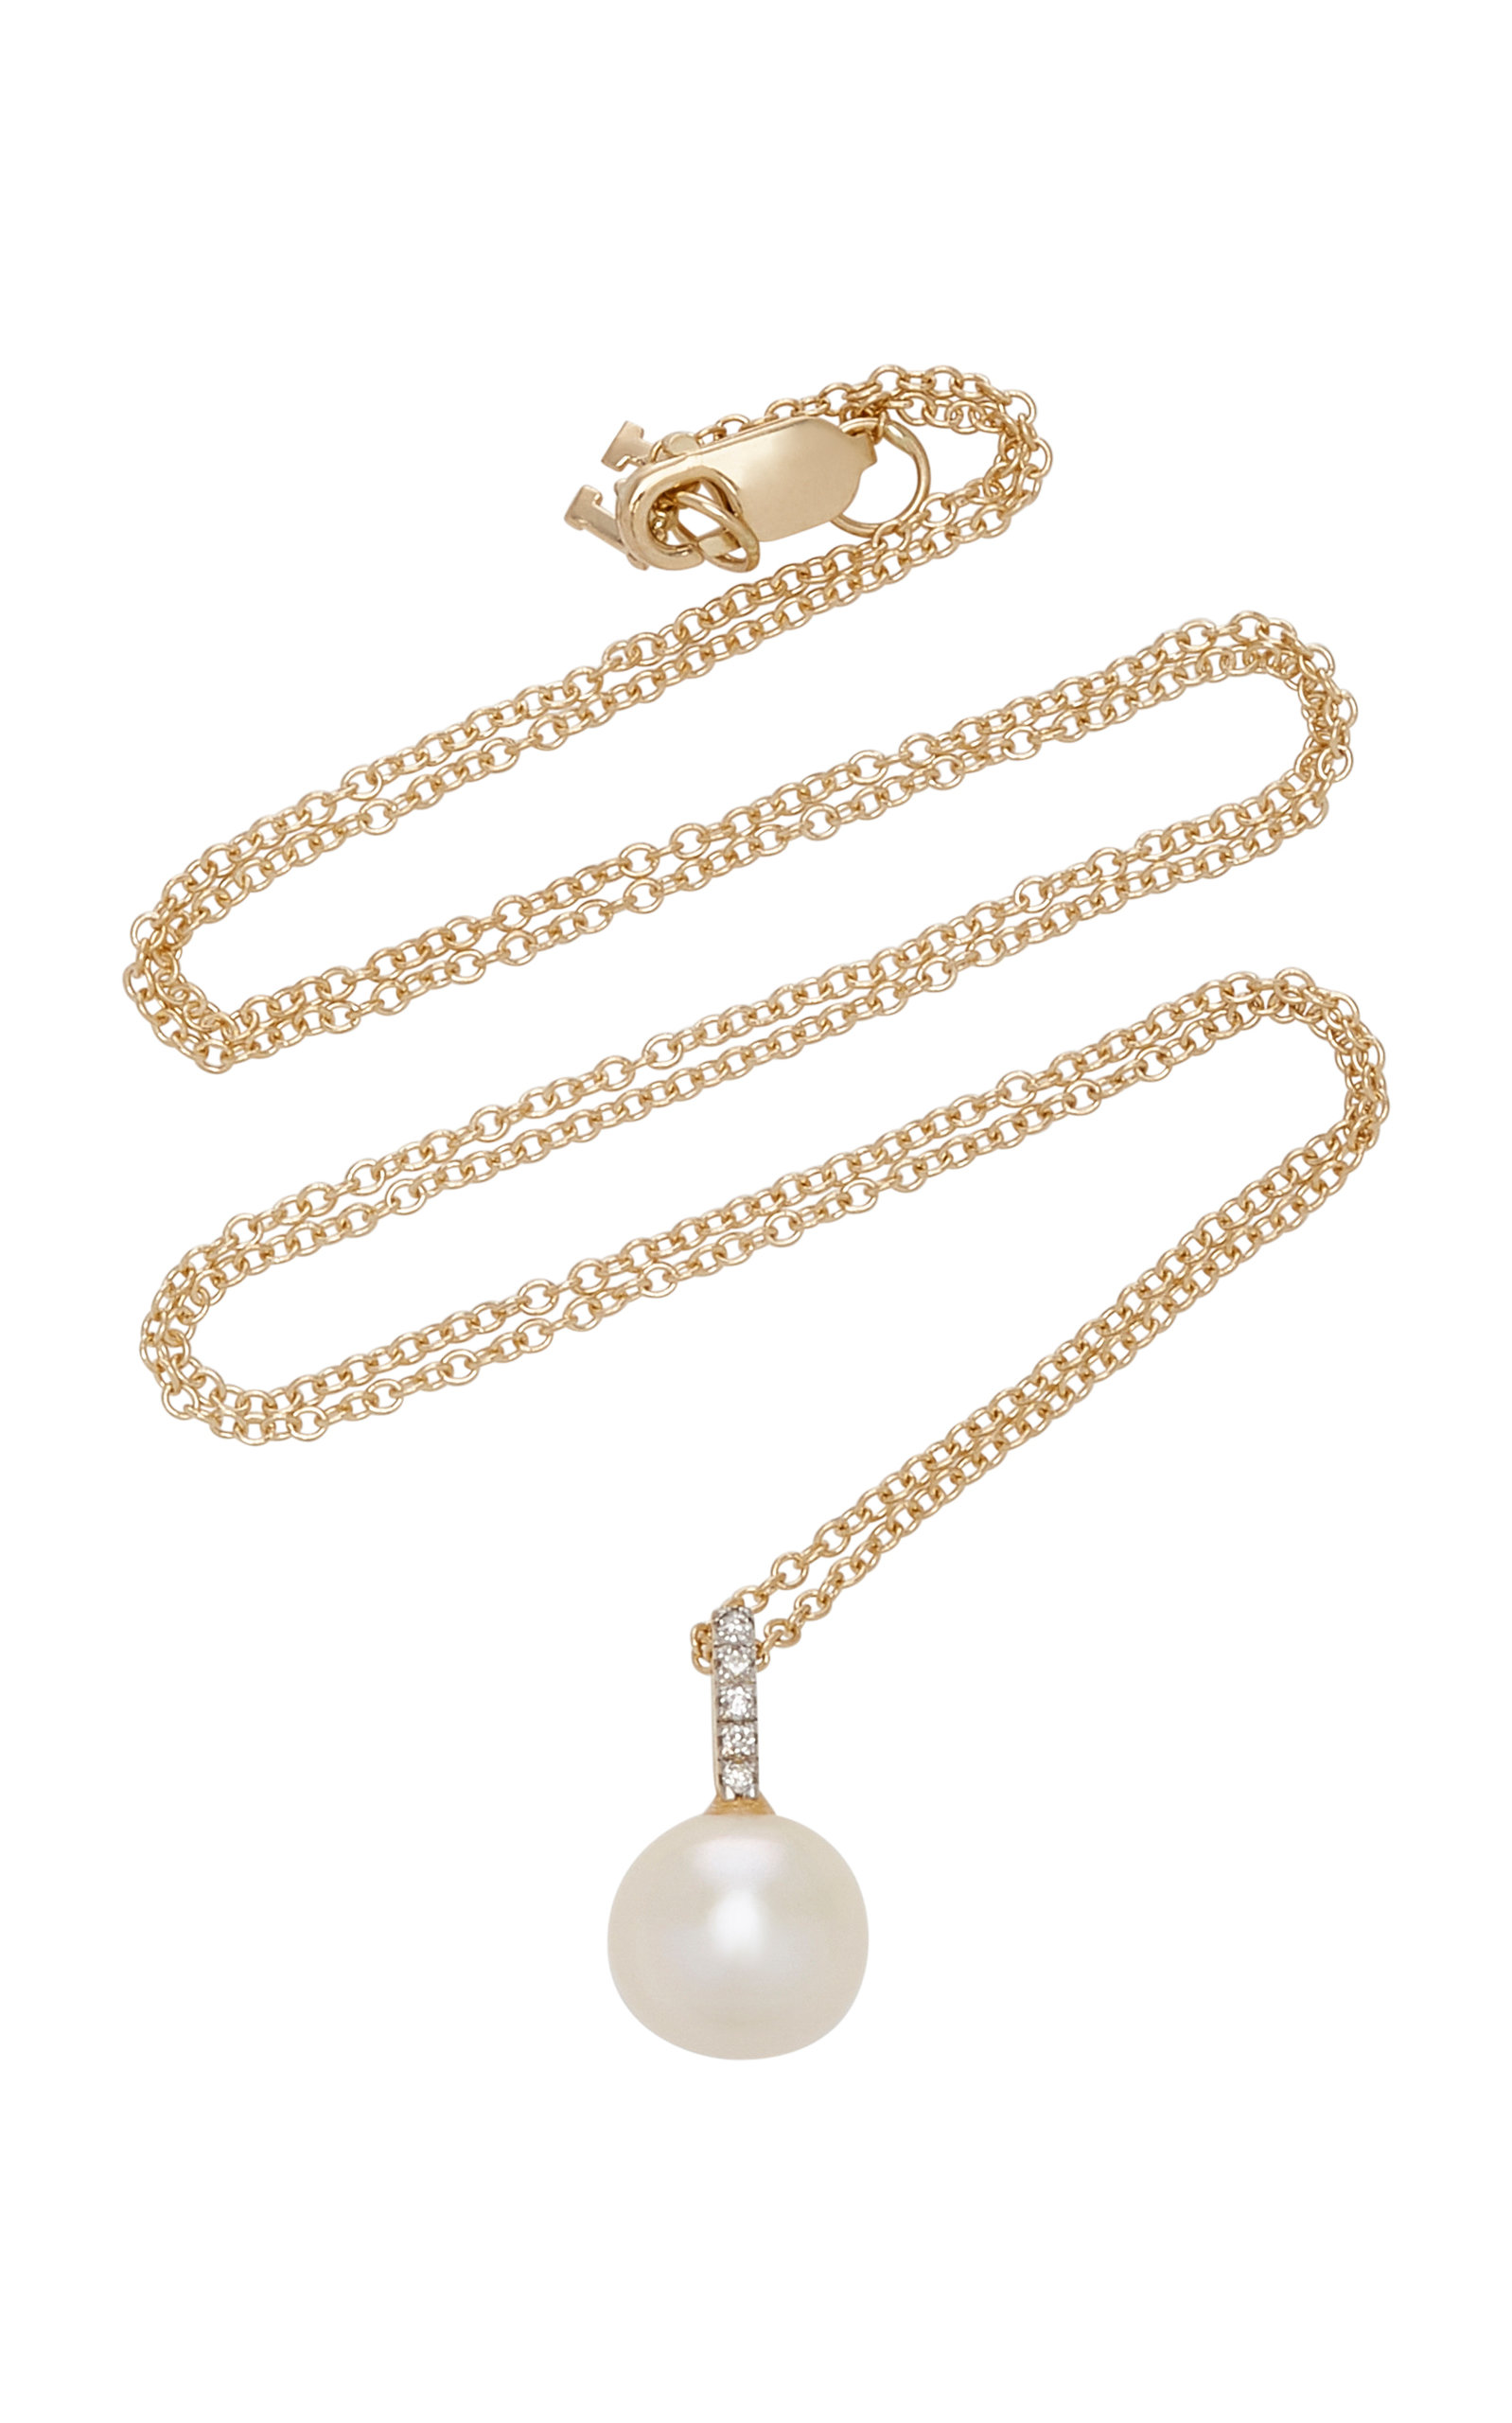 Mateo 14K GOLD, SIMPLE PEARL & DIAMOND PENDANT NECKLACE